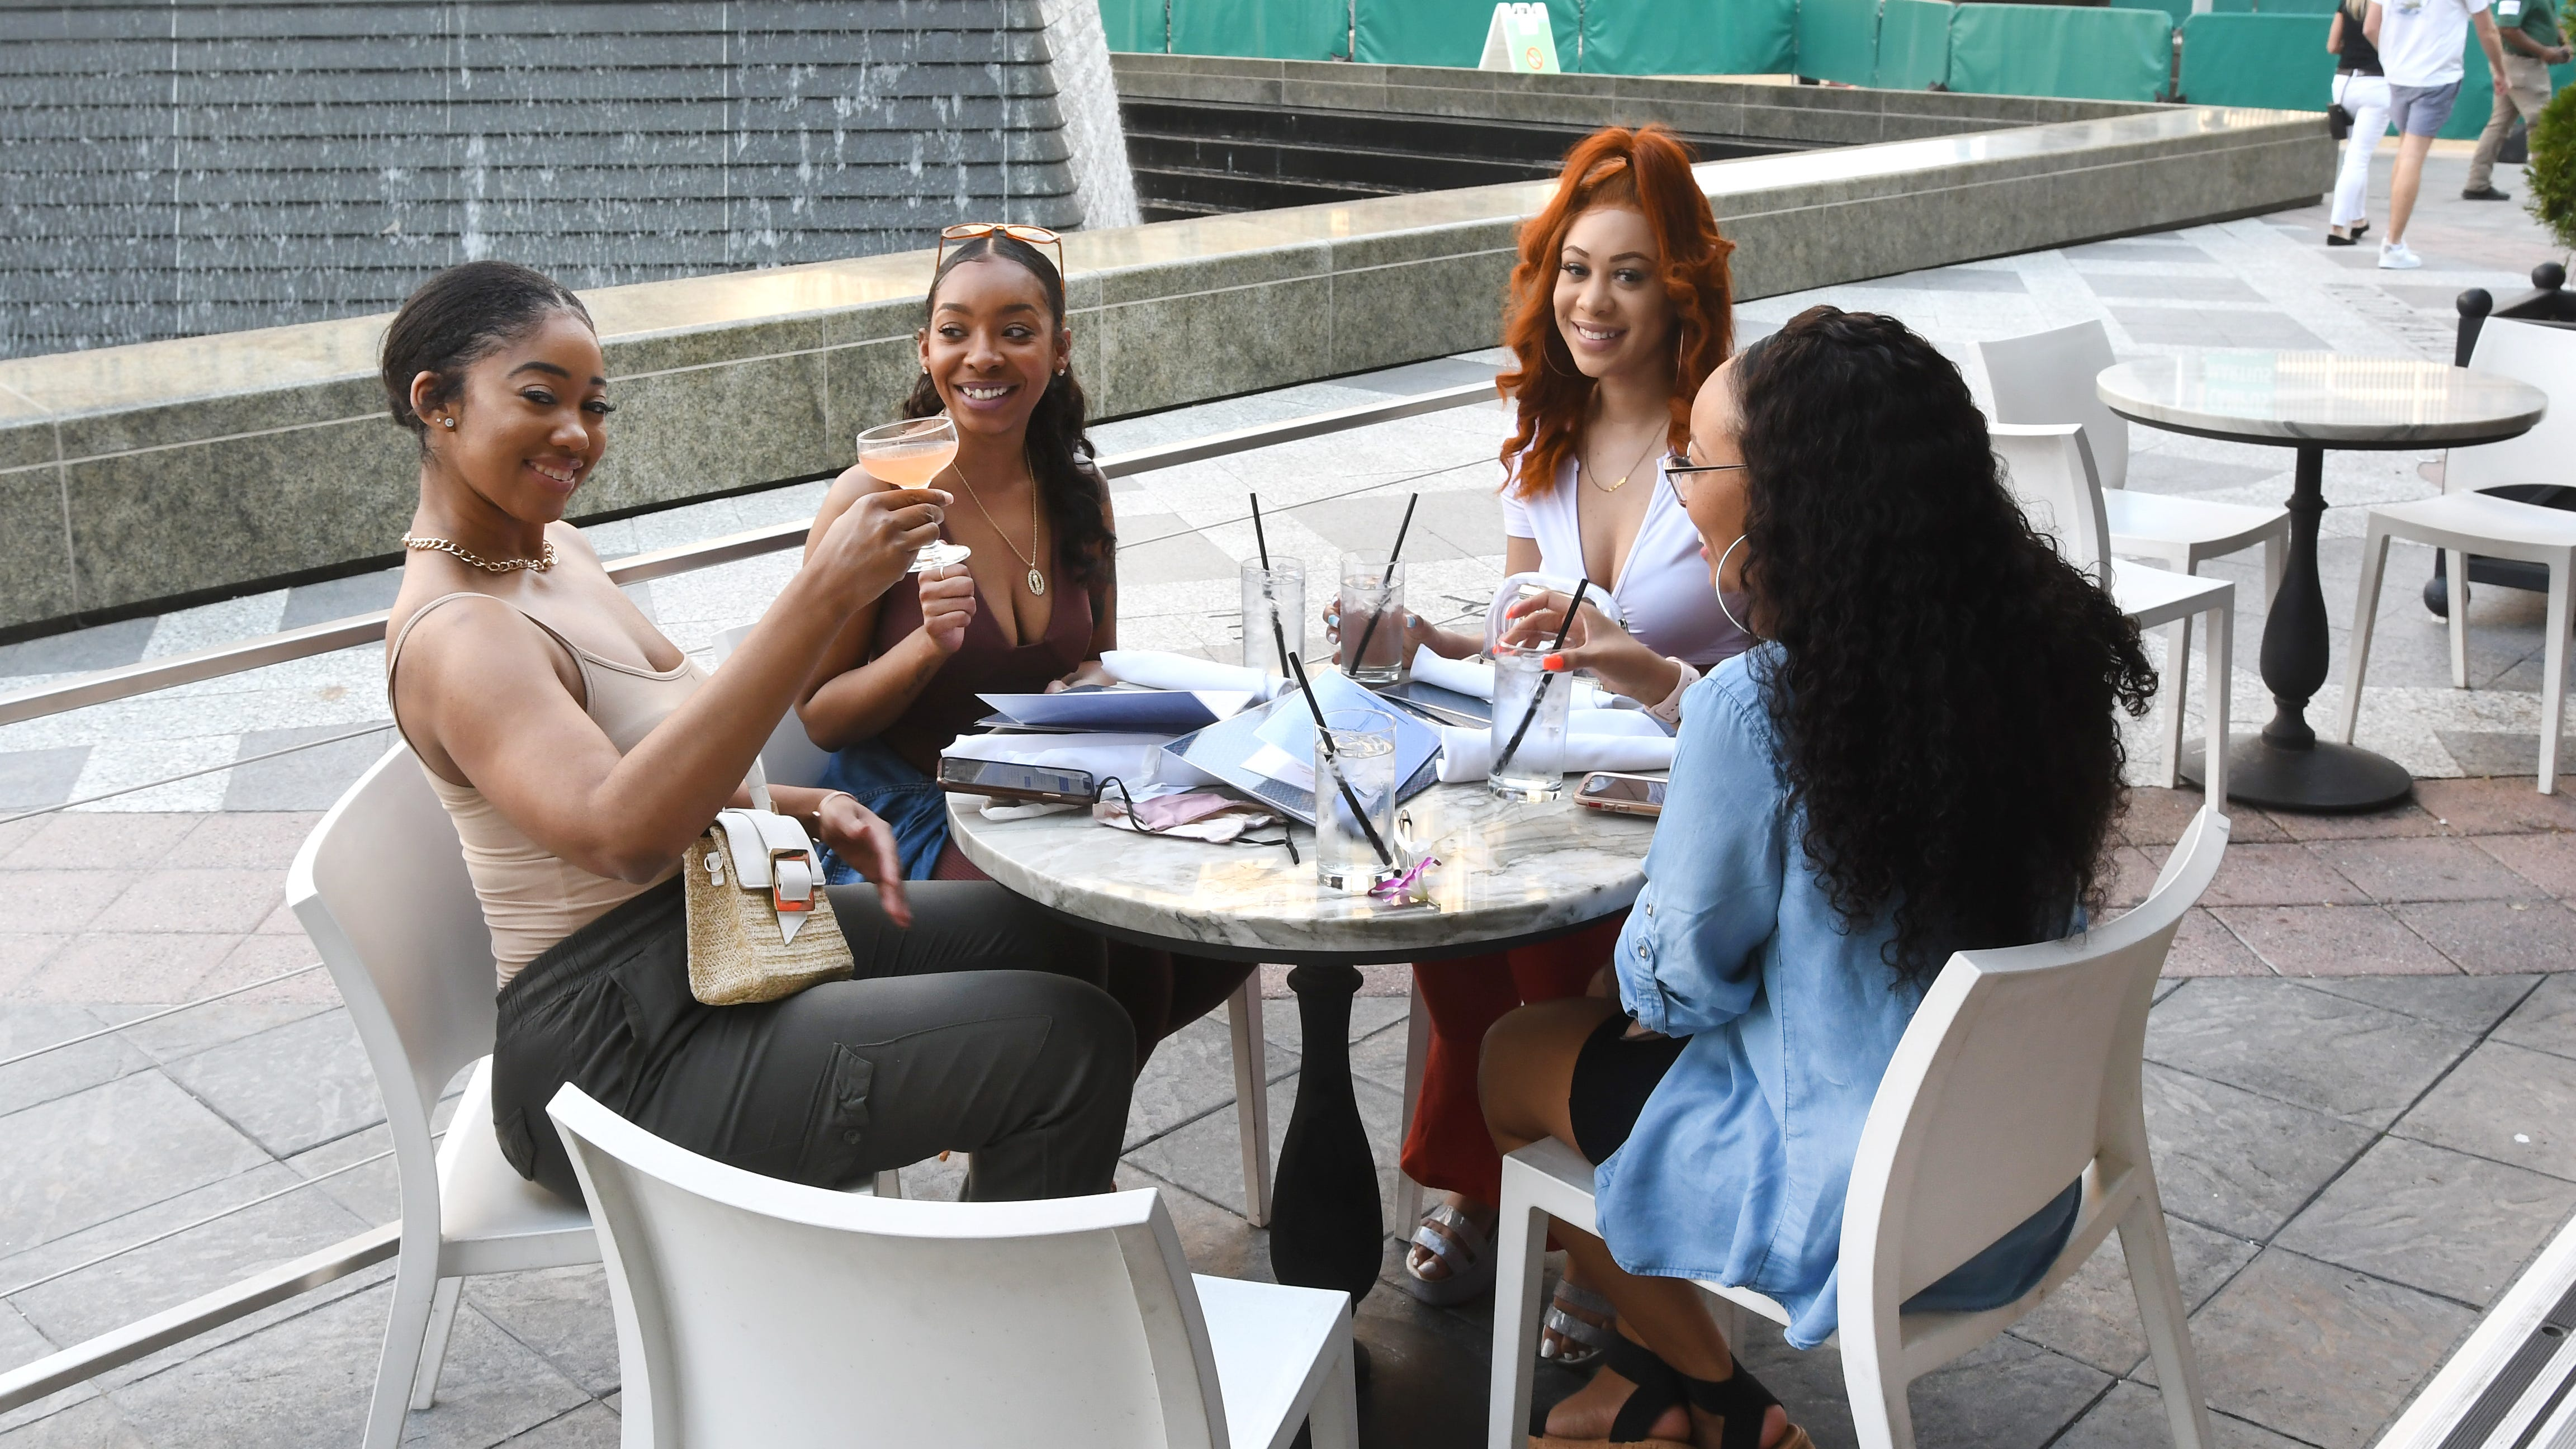 Urban oasis: Beautiful outdoor dining in the city